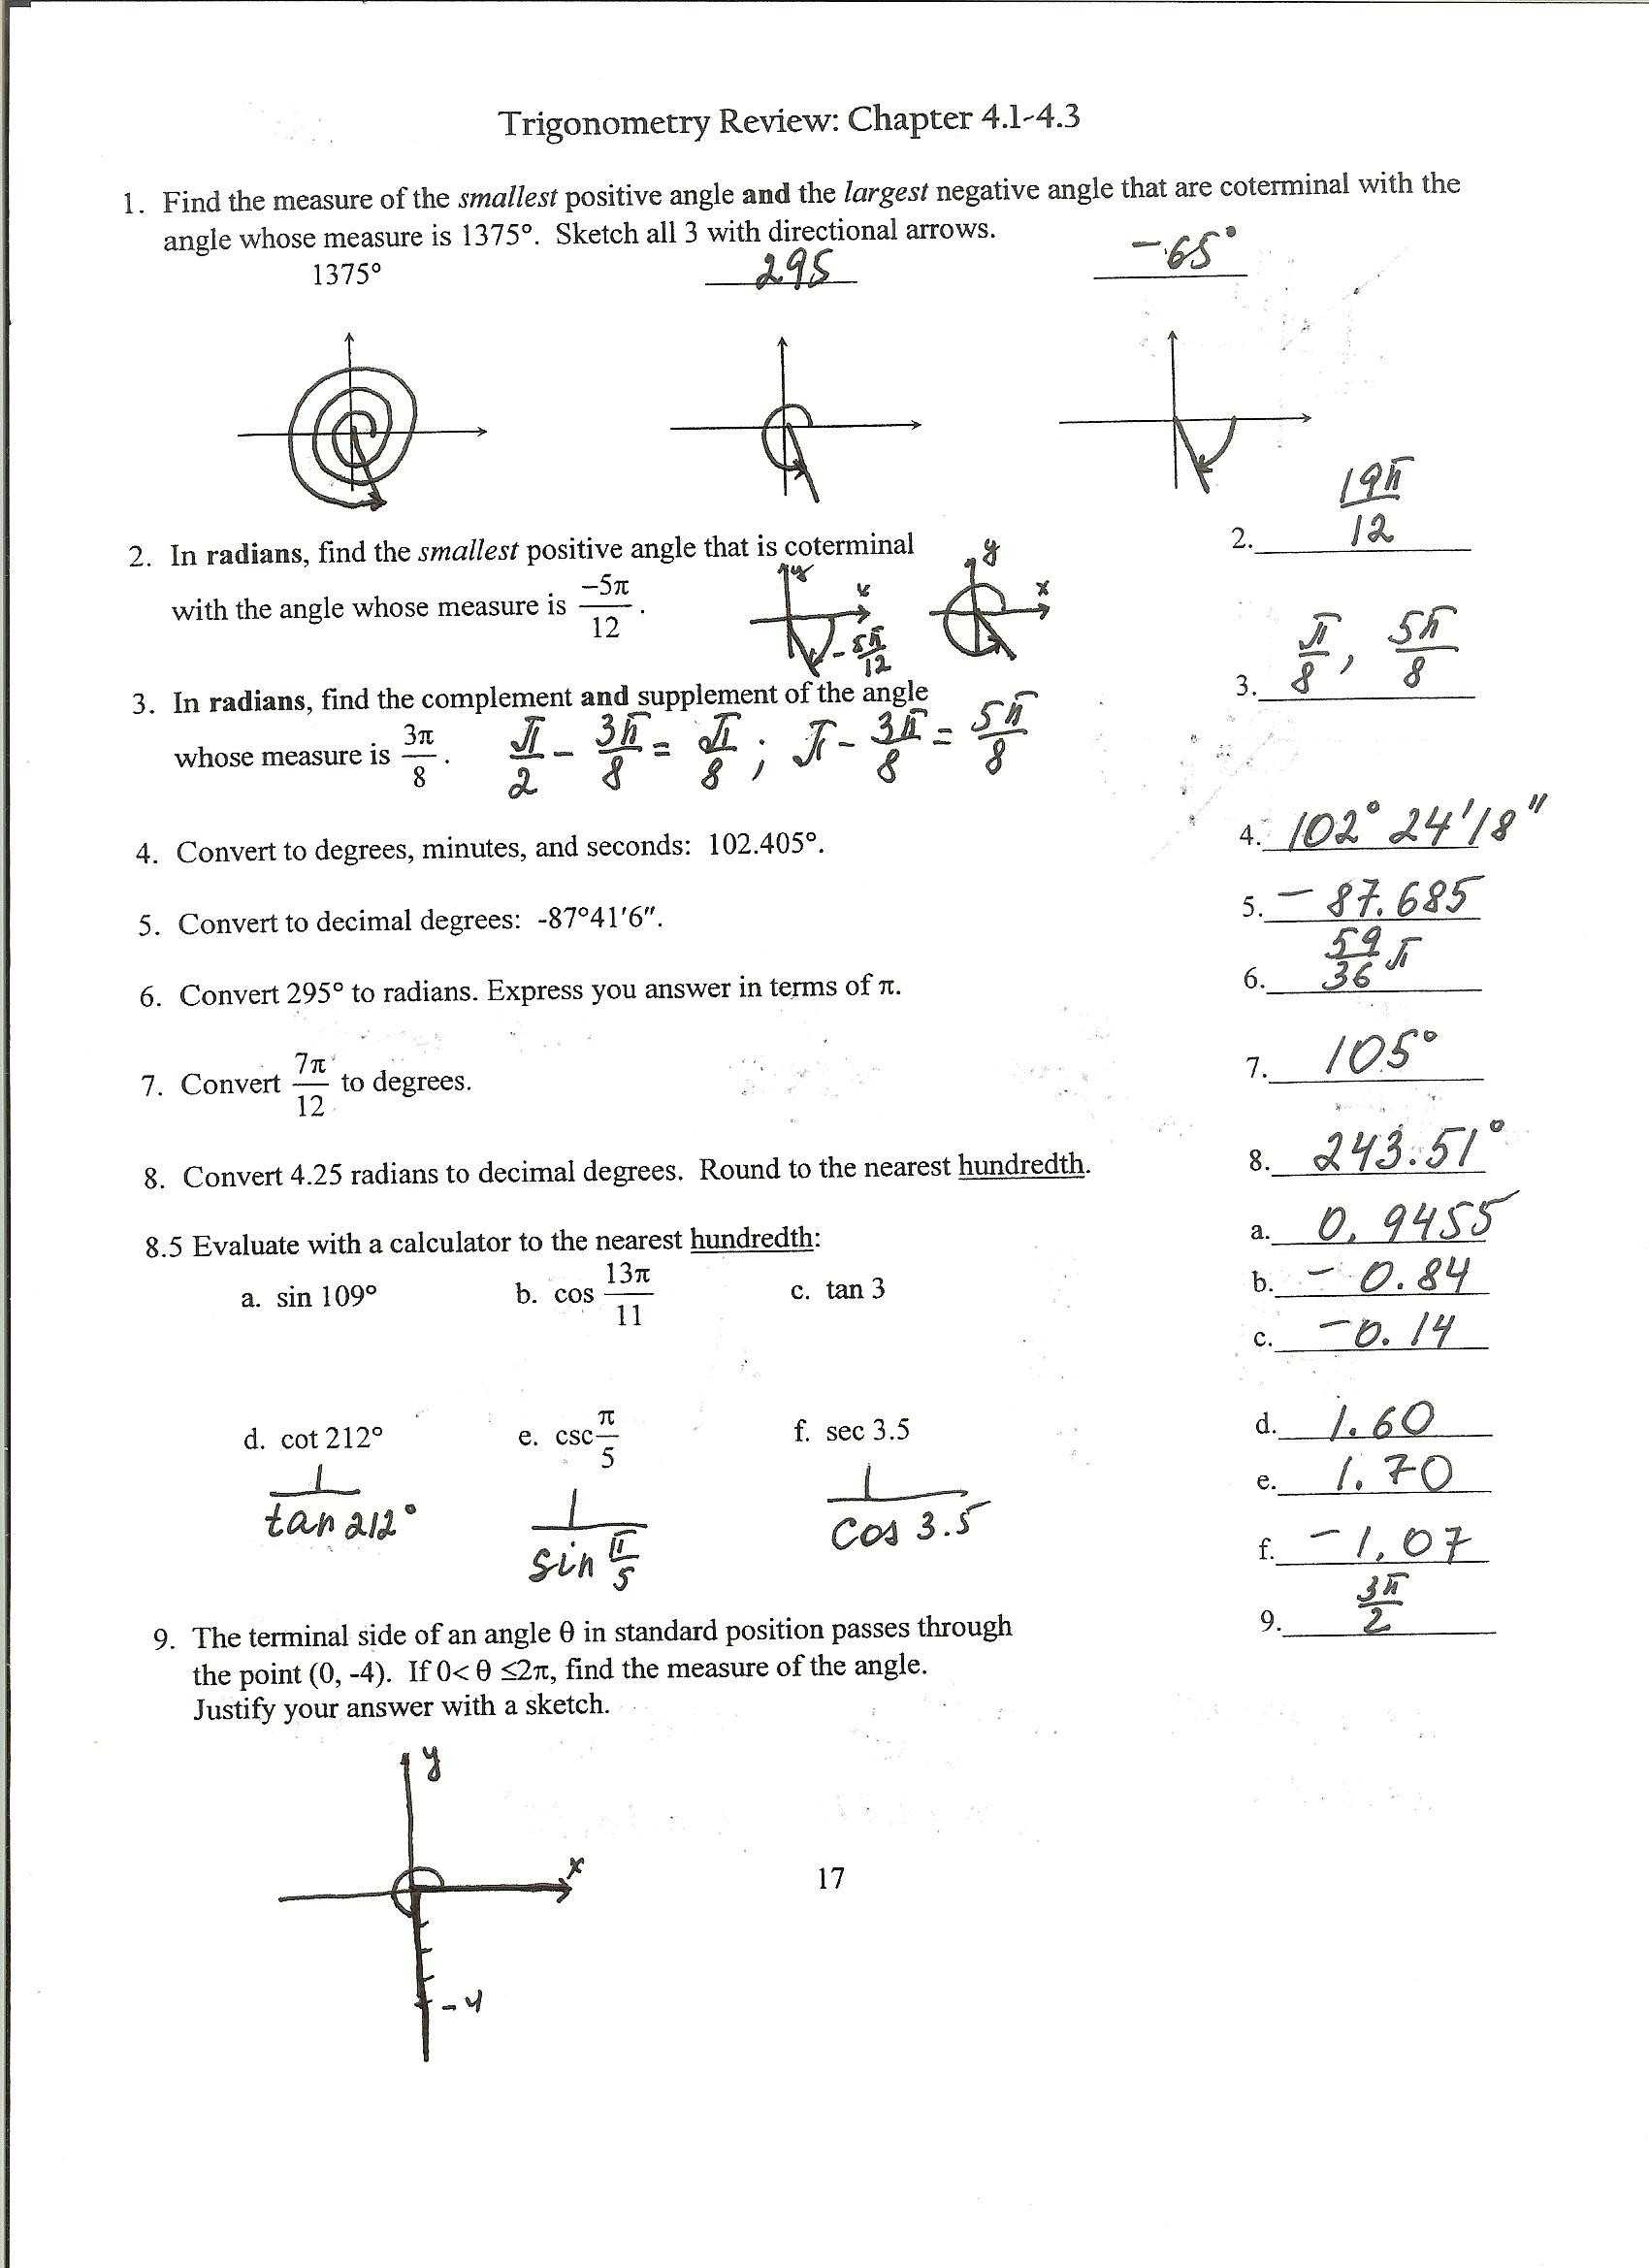 Solving Systems Of Equations Word Problems Worksheet Answer Key together with Inequality Word Problems Worksheet Unique Precalculus Honors